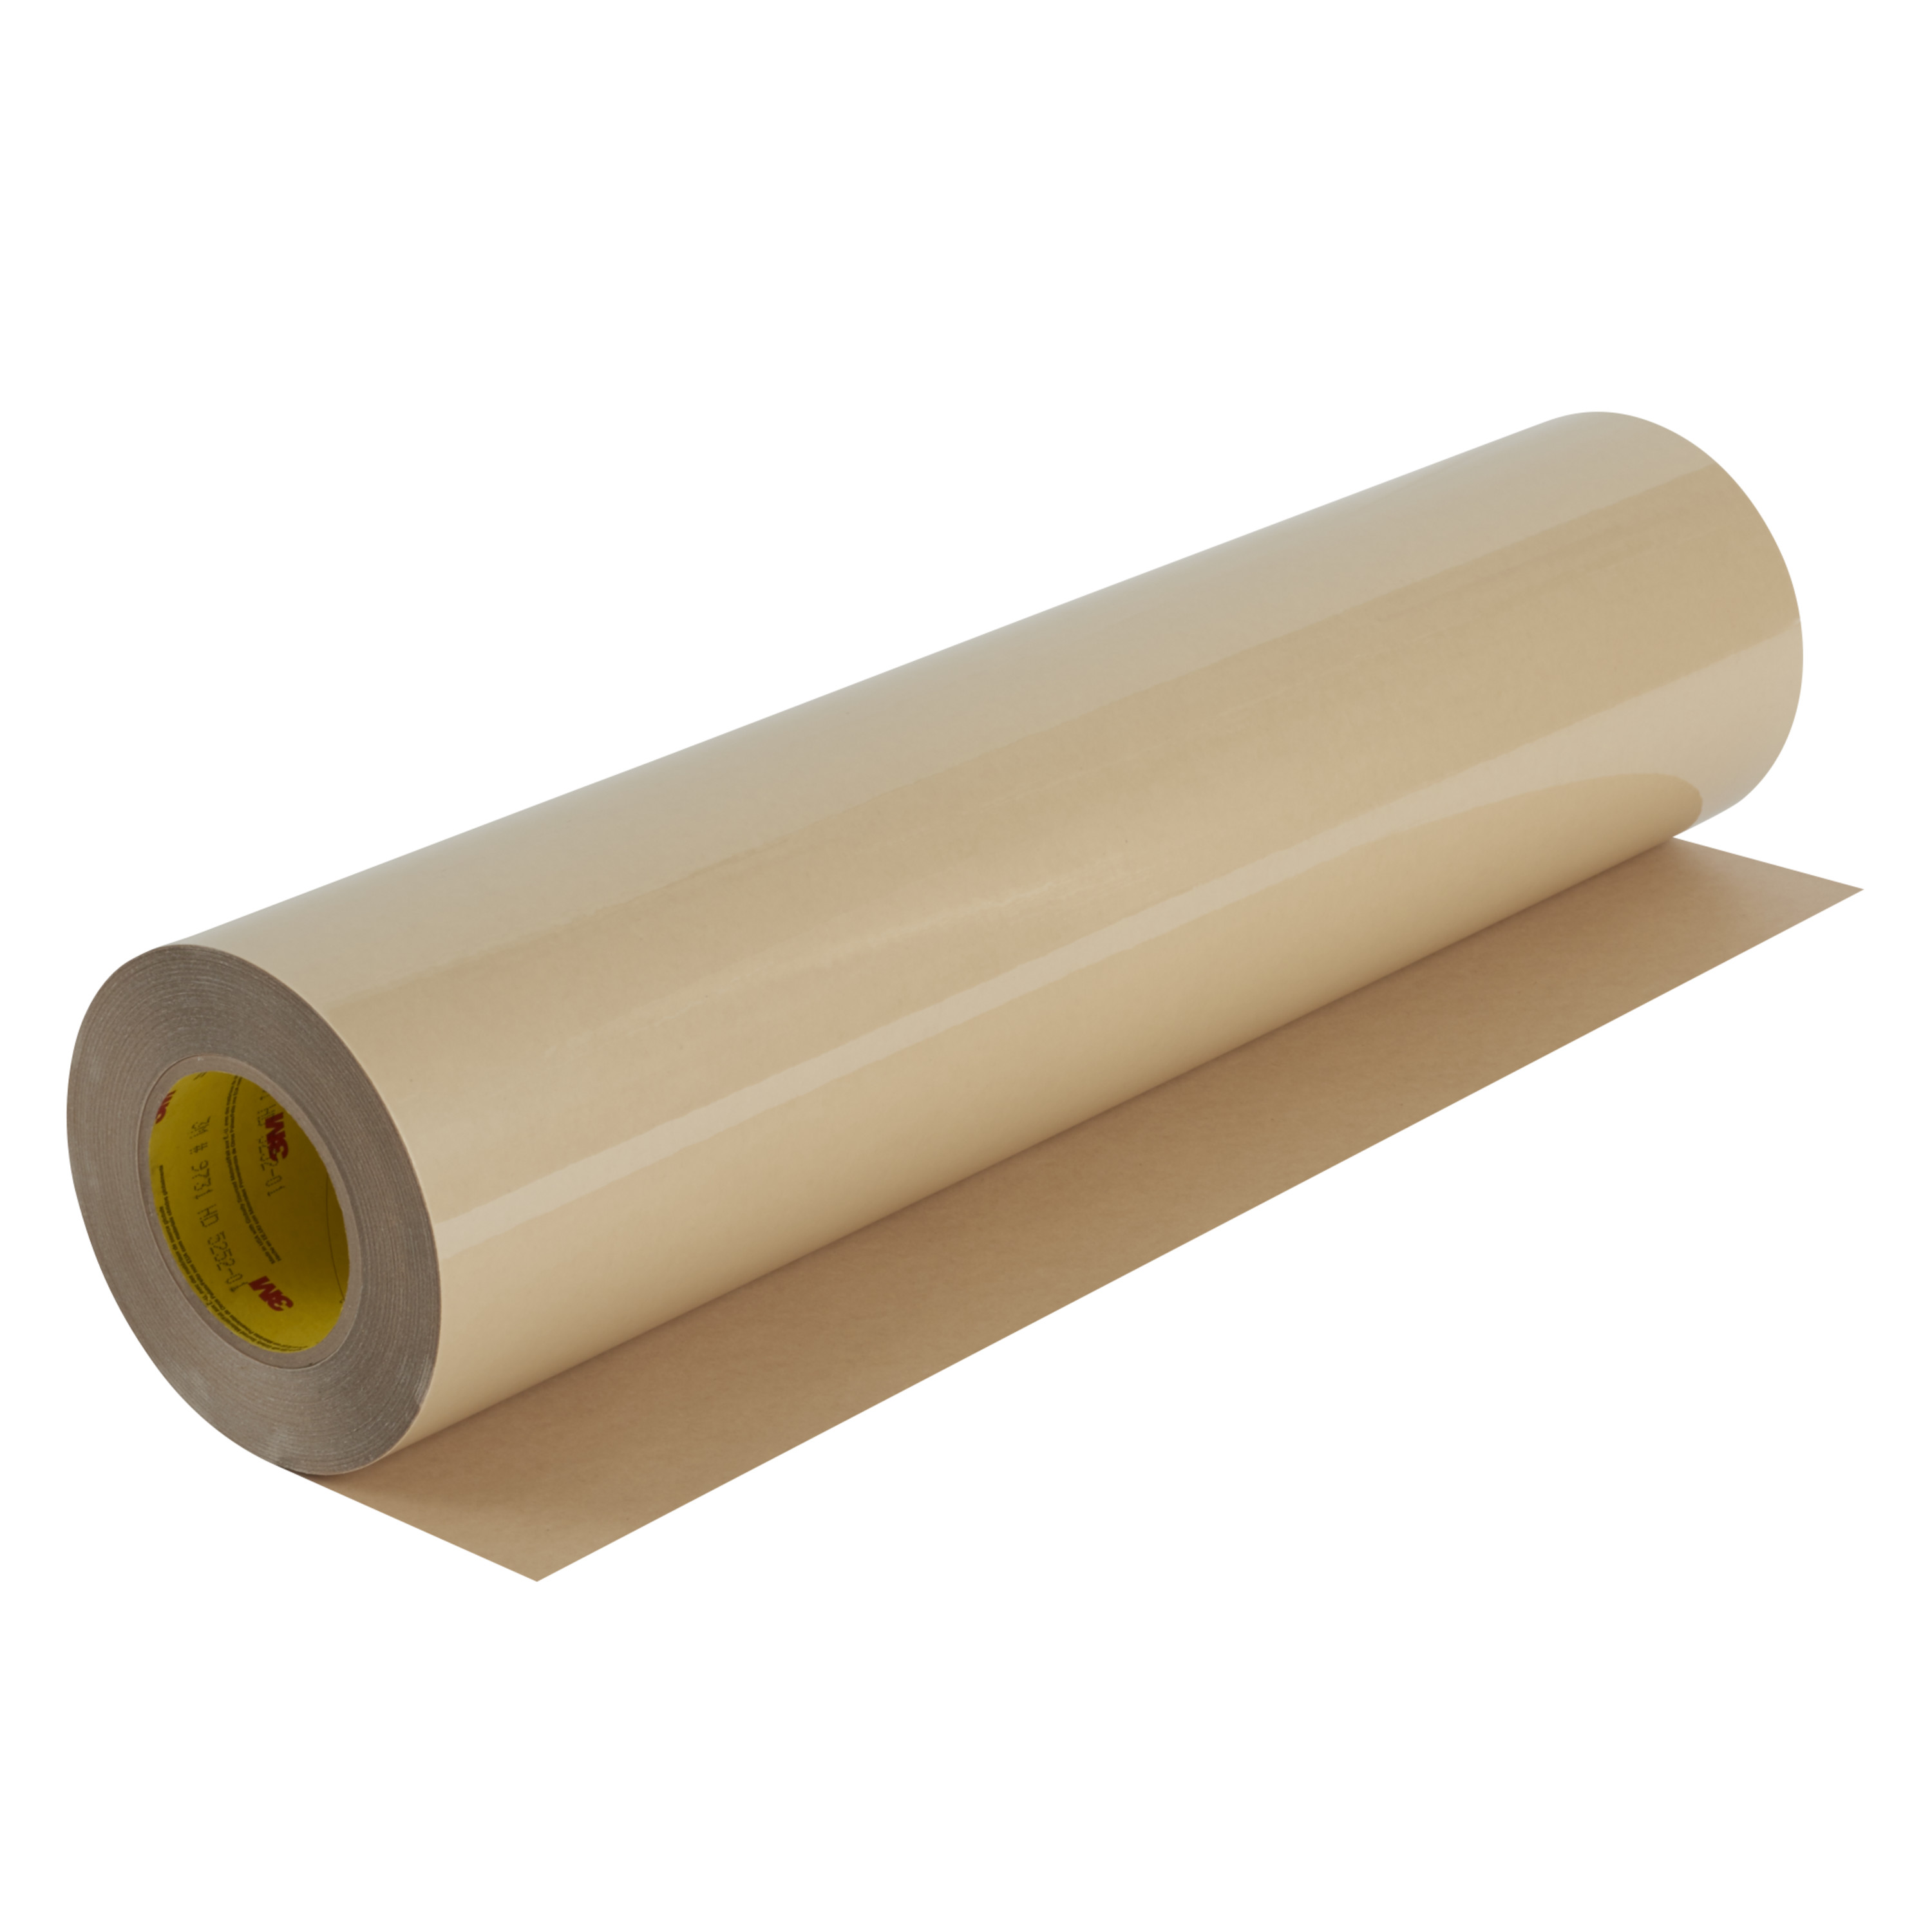 3M™ Double Coated Tape 9731-100, Clear, 12 in x 36 yd, 0.1 mm, 1 roll per case